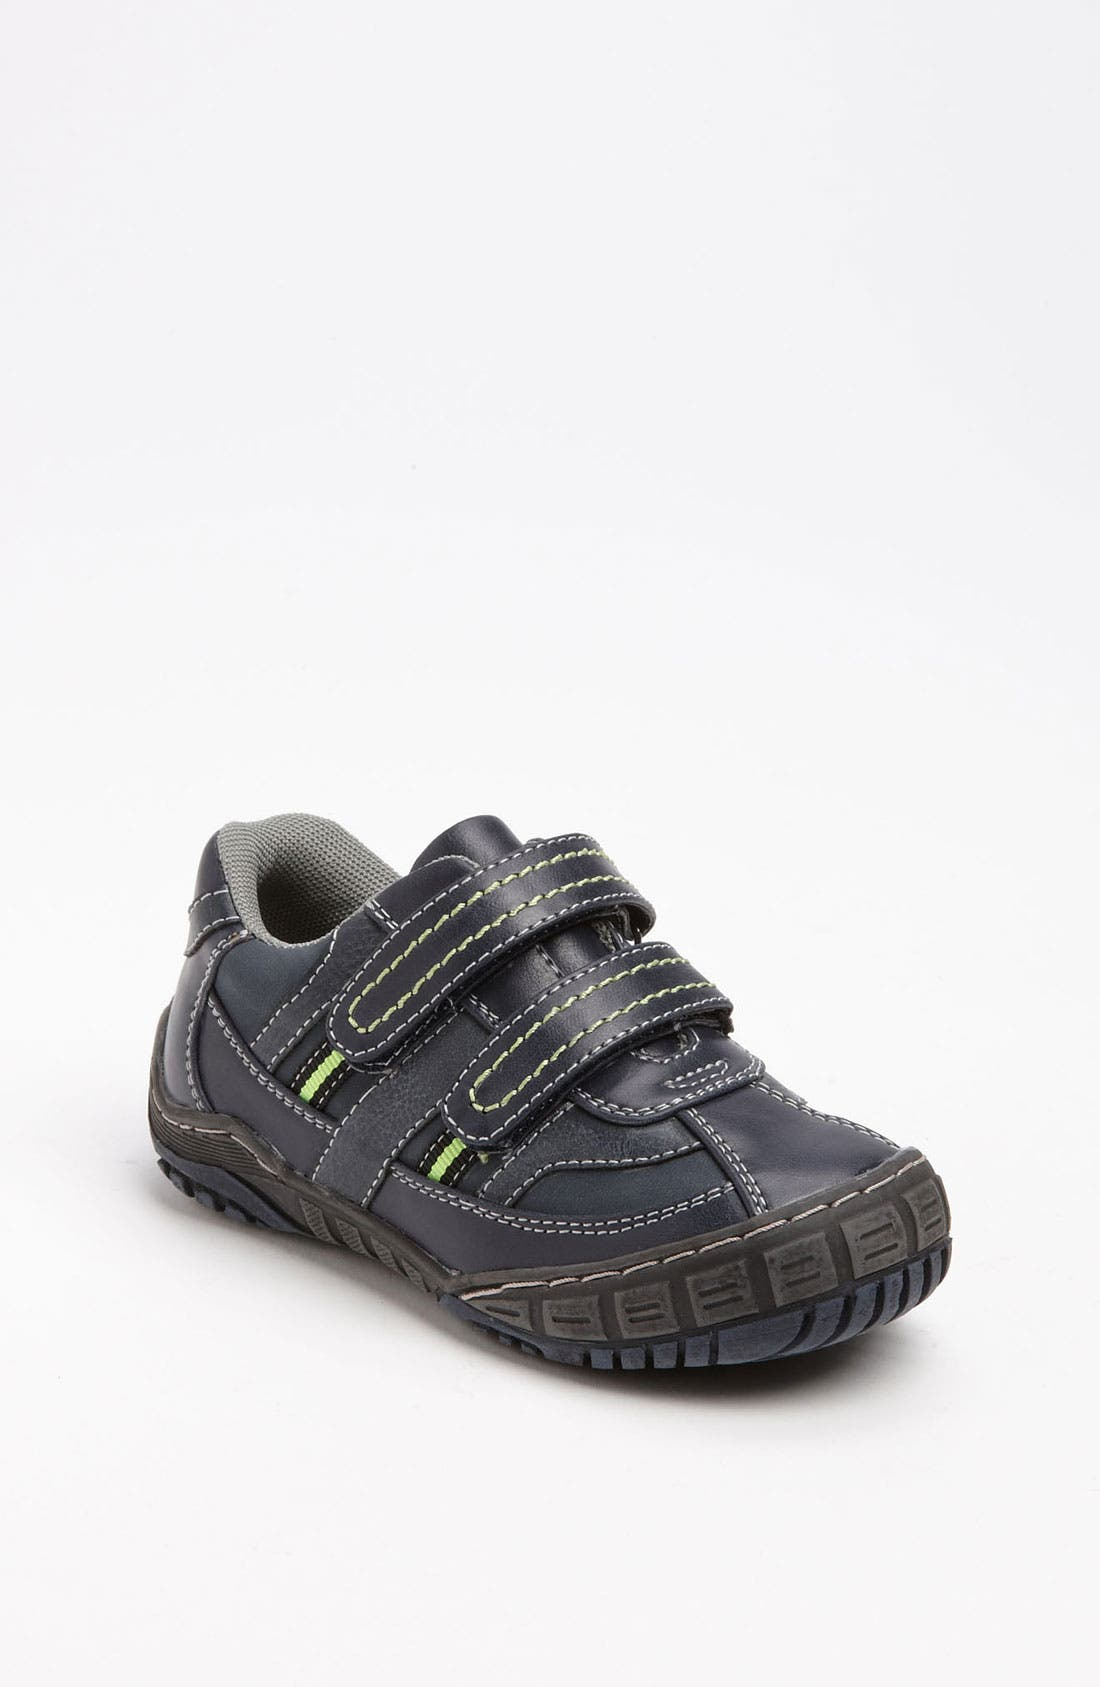 Main Image - Jumping Jacks 'Pal' Sneaker (Toddler & Little Kid)